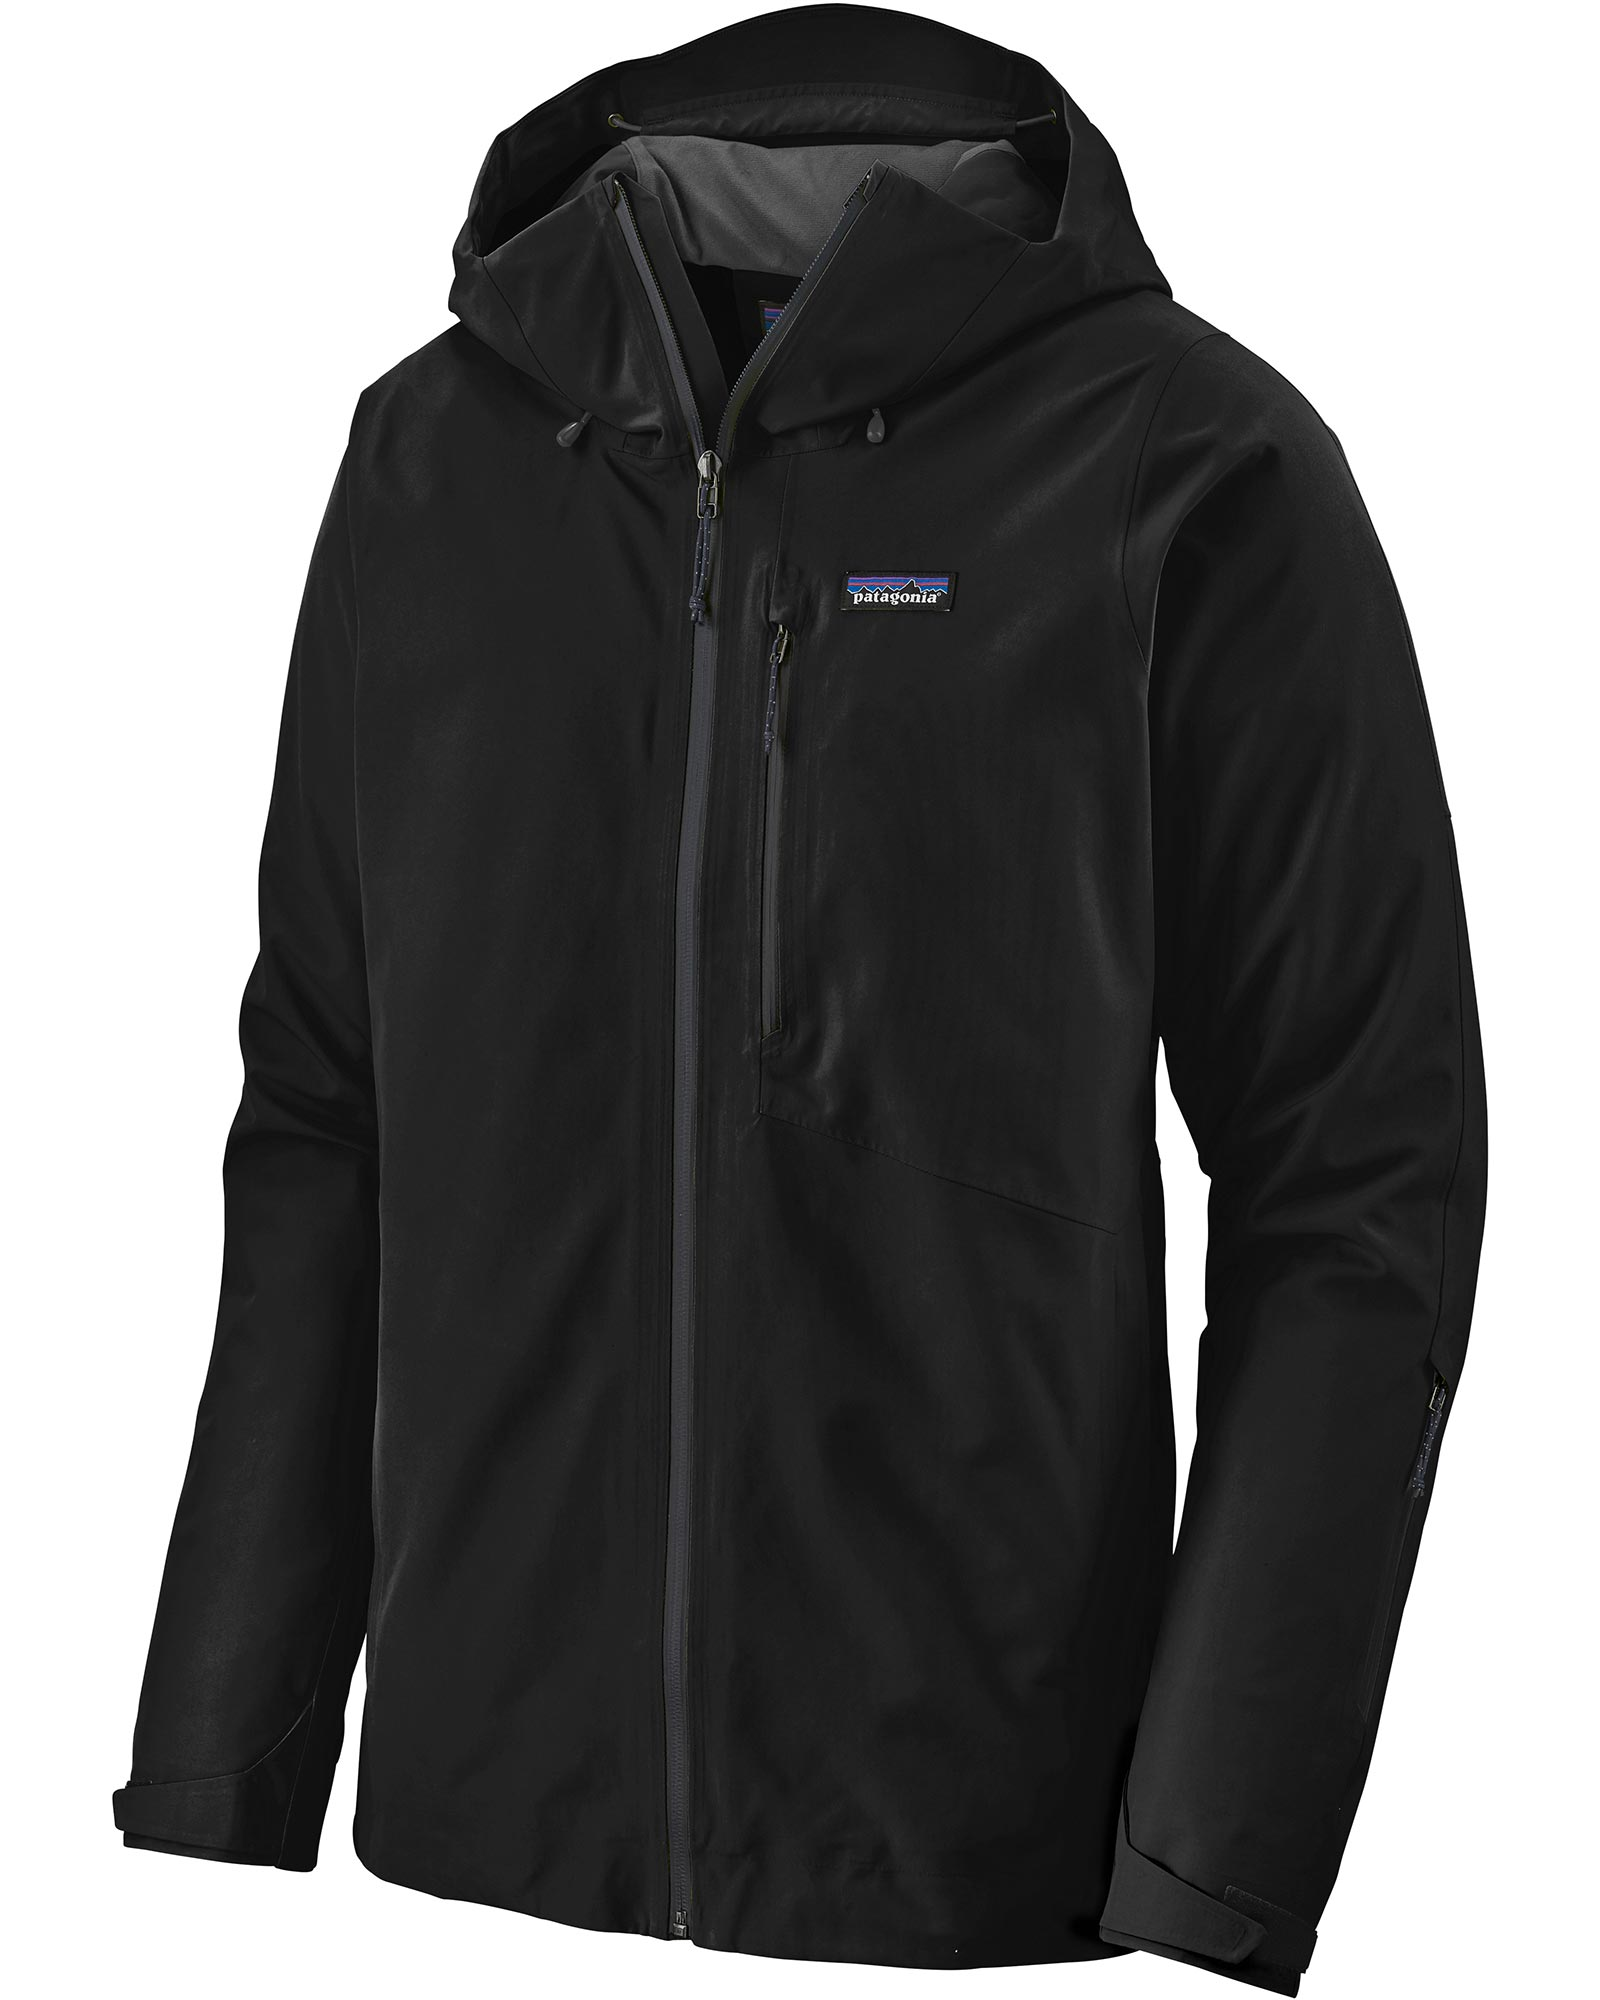 Patagonia Men's Powder Bowl GORE-TEX Ski Jacket 0